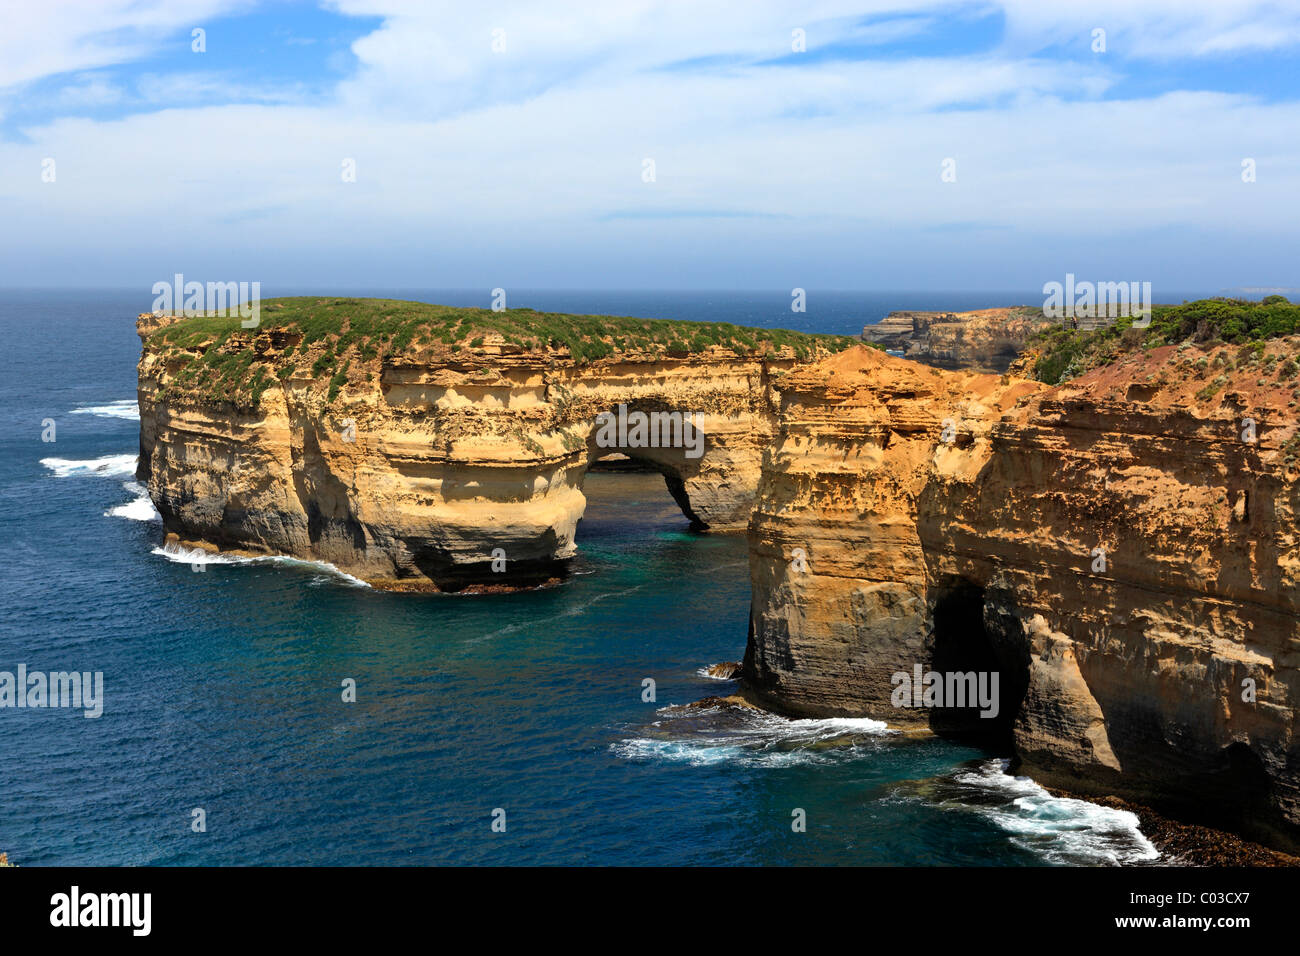 Littoral, Port Campbell National Park, Victoria, Australie Photo Stock